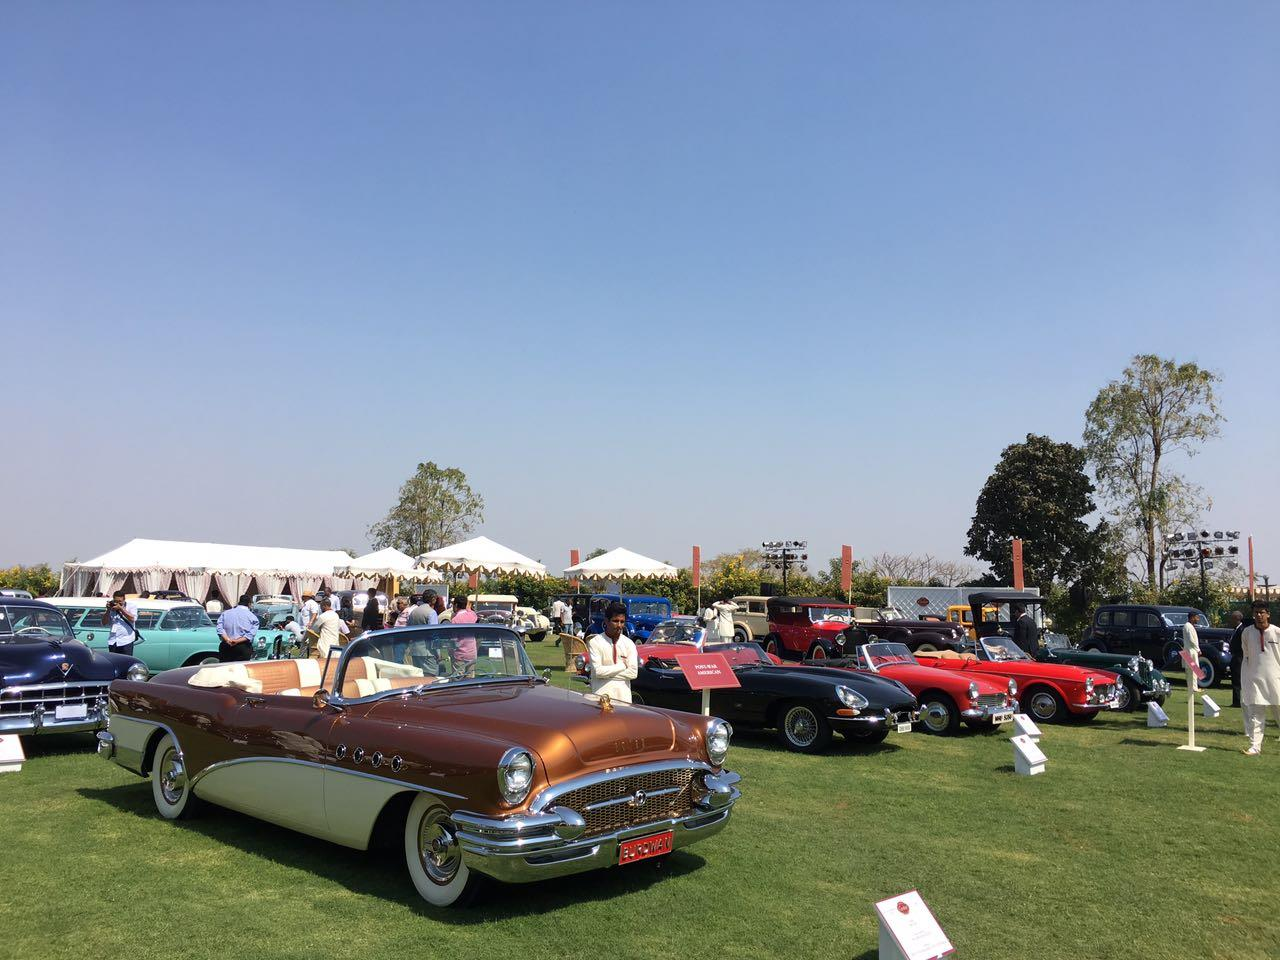 Cartier Concours D'Elegance 2017 image gallery